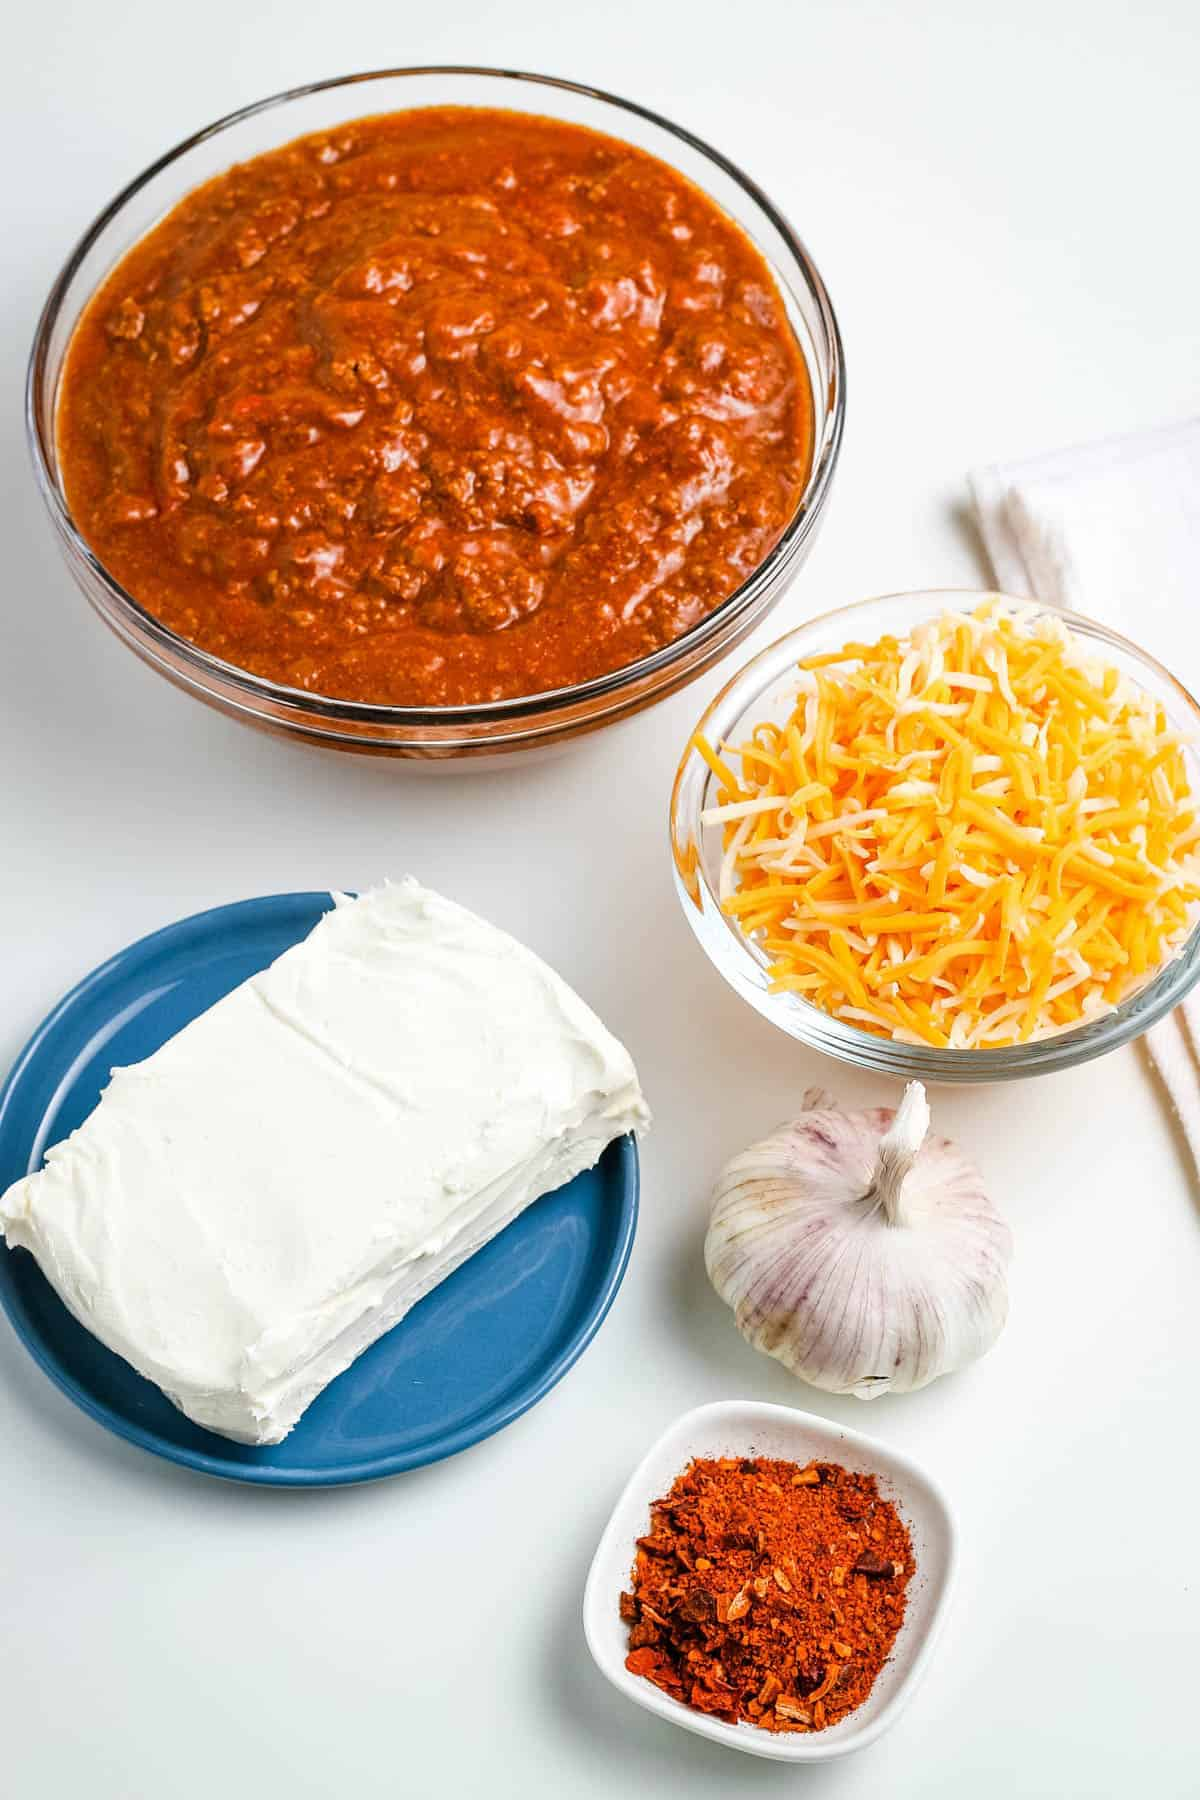 ingredients for chili dip in glass bowls, including chili without beans, shredded cheese, cream cheese, garlic, and taco seasoning